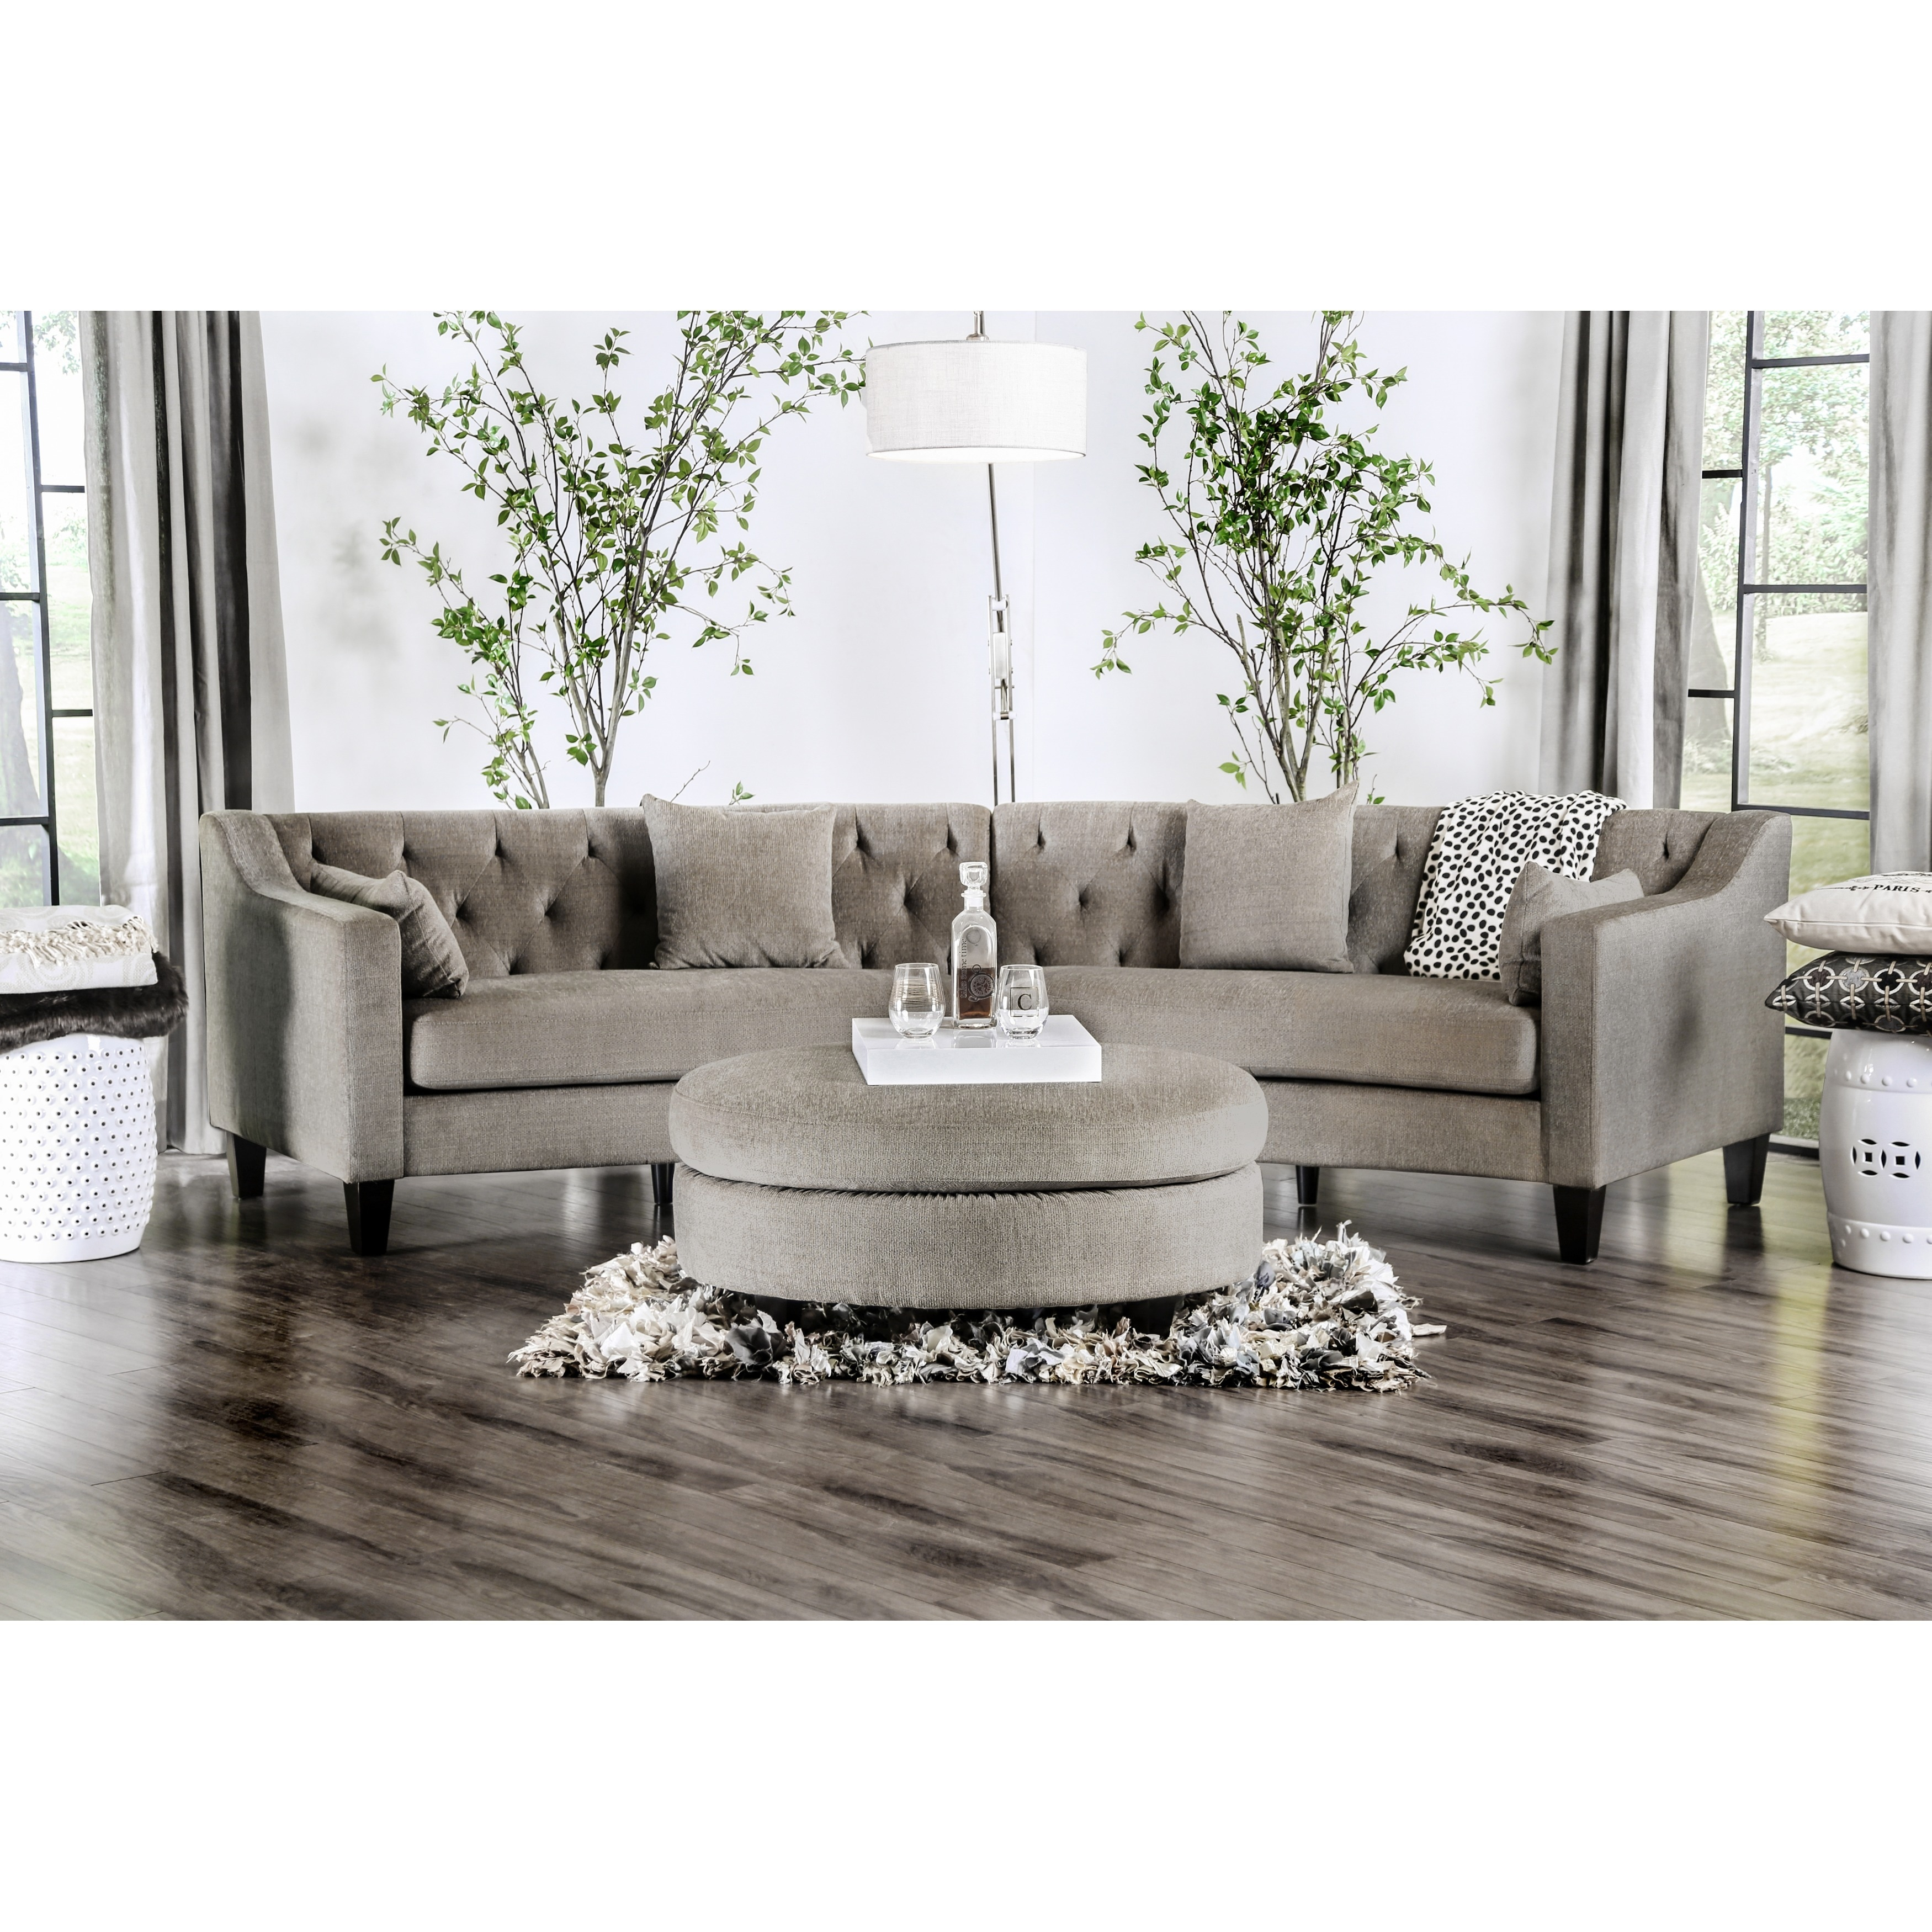 Furniture Of America Lindsey Curved Sectional On Free Shipping Today 14230976